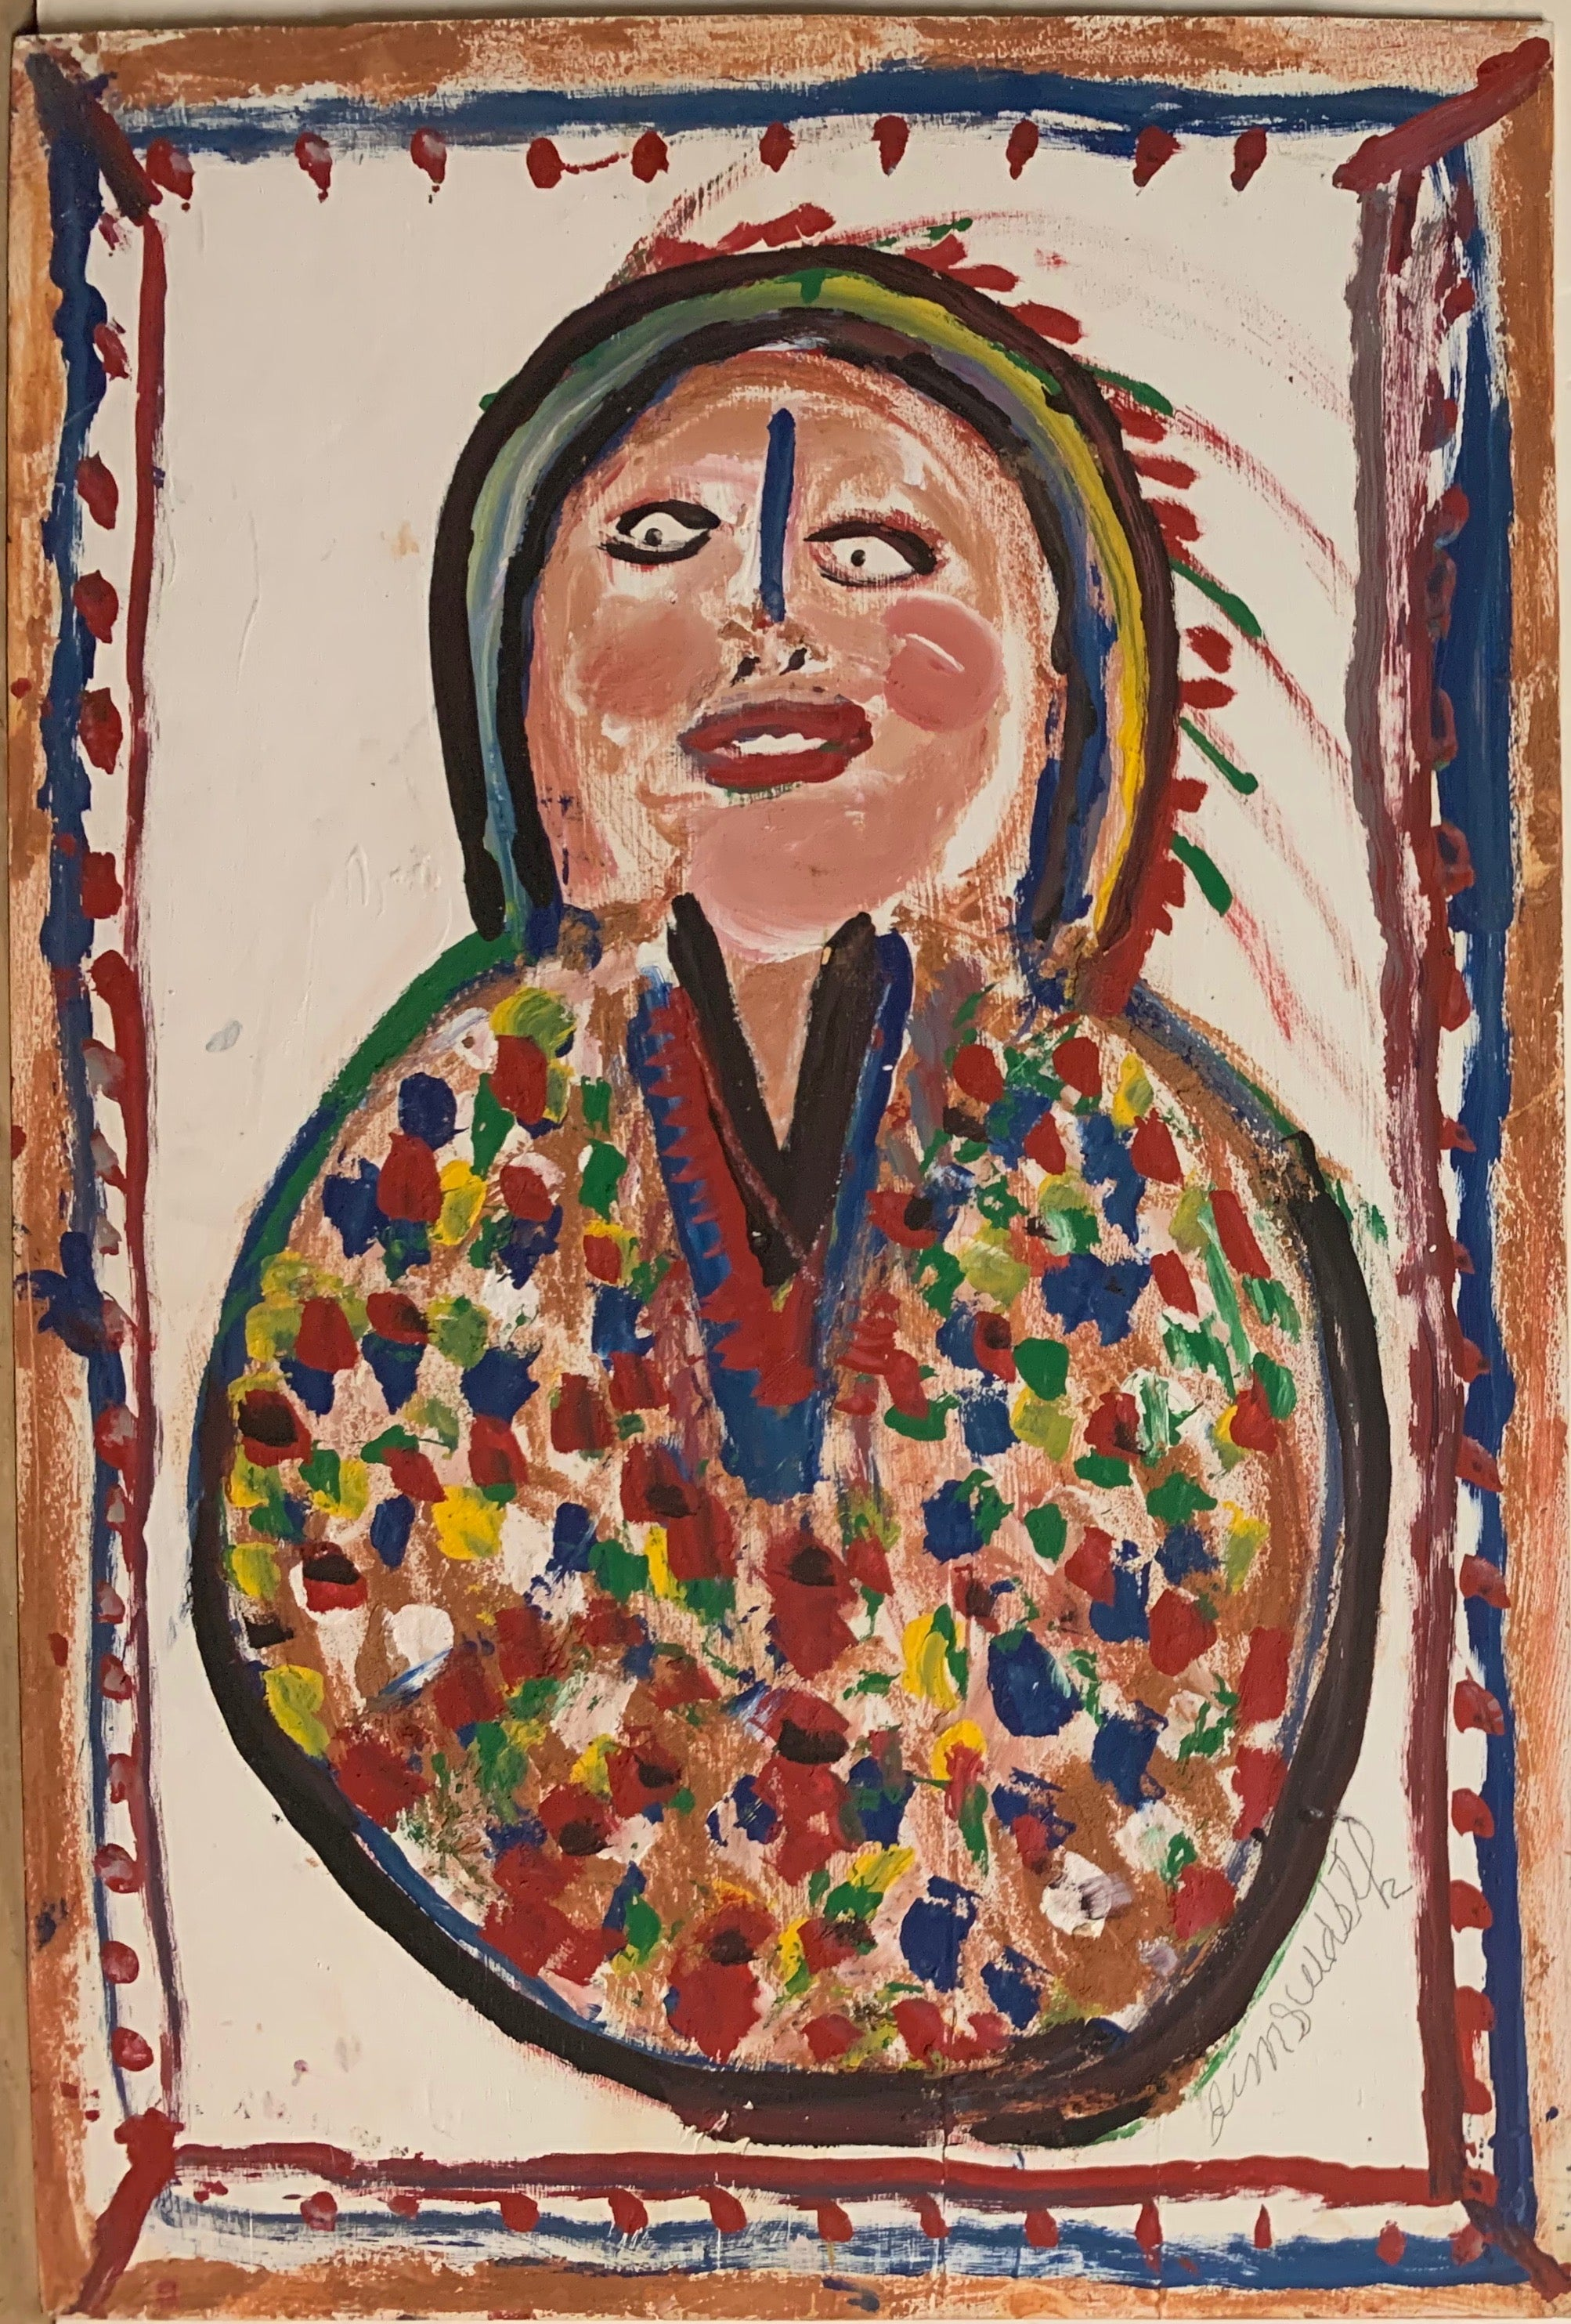 A painting of a smiling Native American.